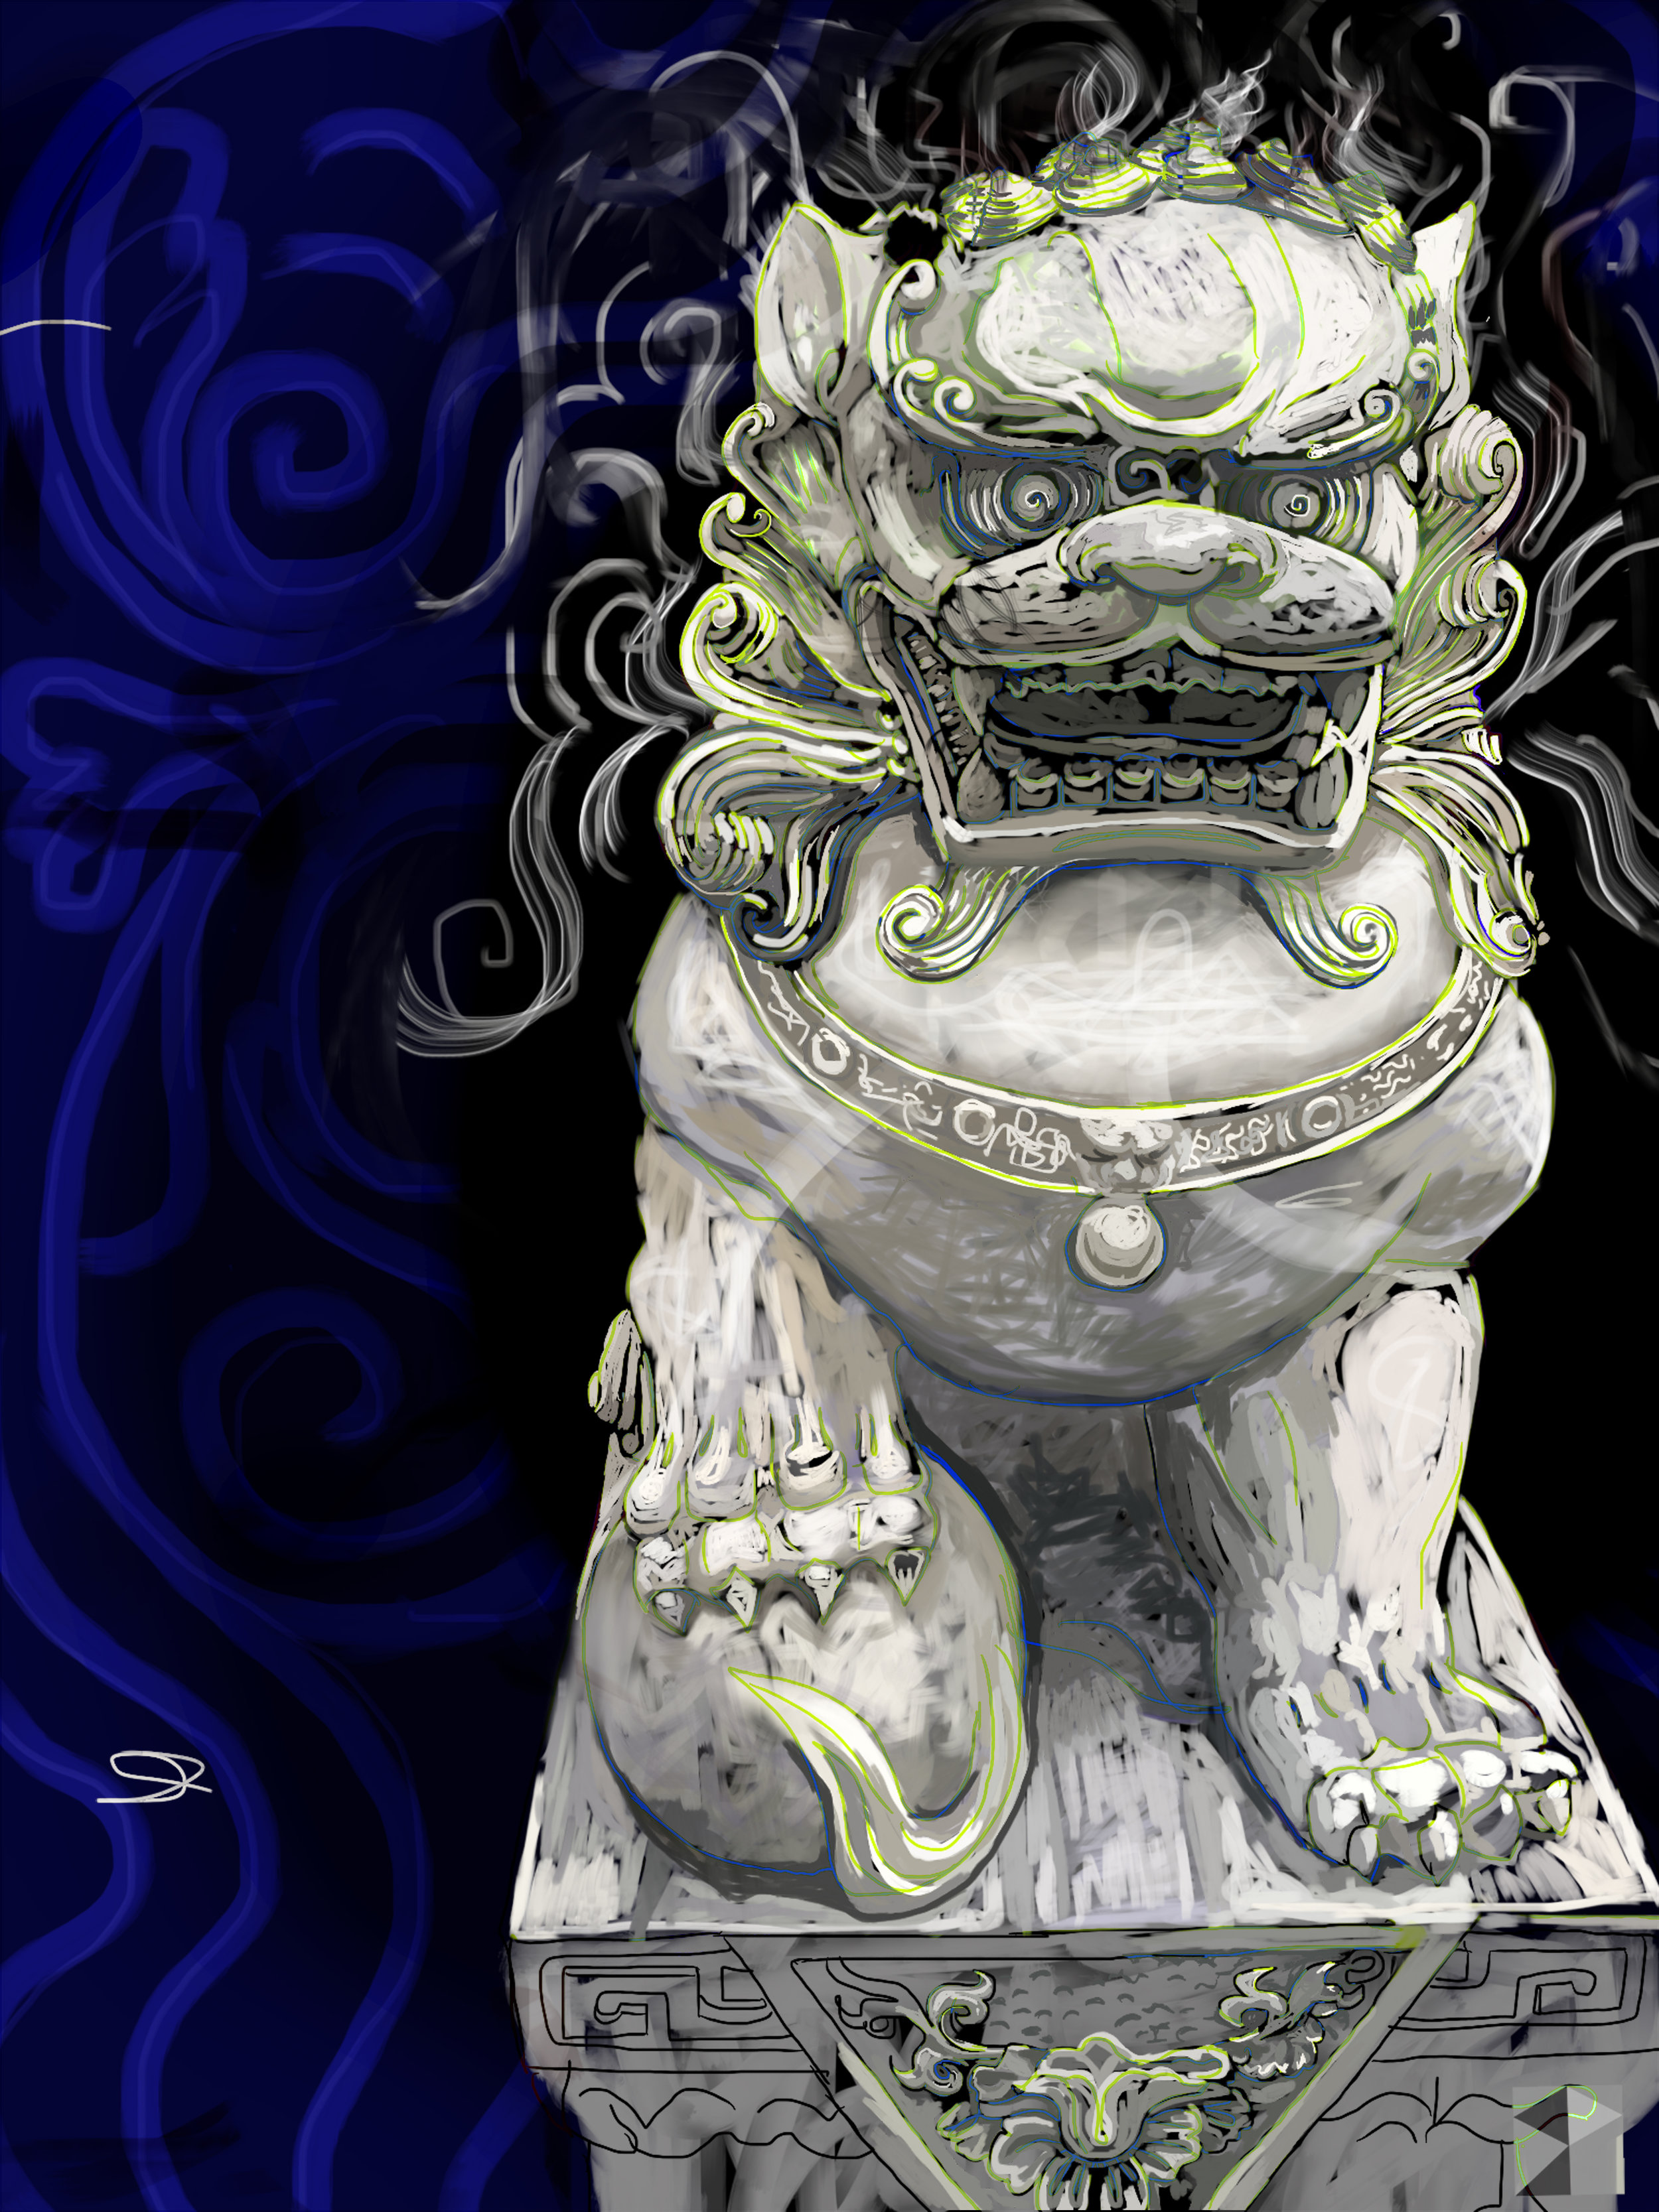 "Foo Dog, Pearl District, Portland, Oregon.    Electronics Painting, iPad, Procreate, Pencil 53,  Photoshop. © 2016 dimensions variable to 30"" x 40""  giclee limited edition (25) prints available contact the artist"